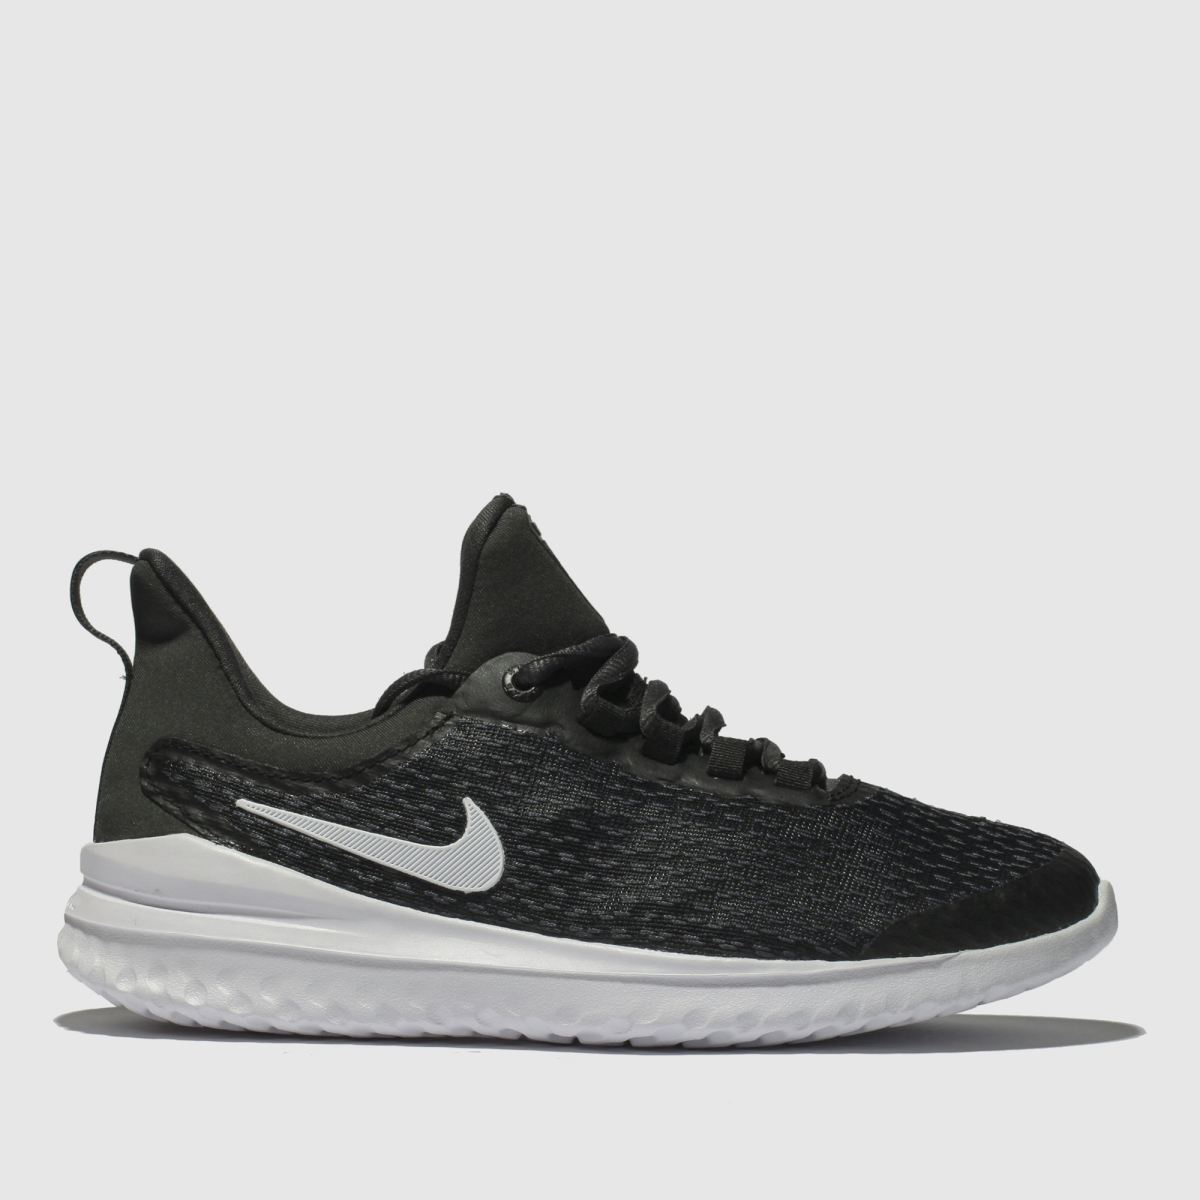 Nike Black & White Renew Rival Trainers Youth